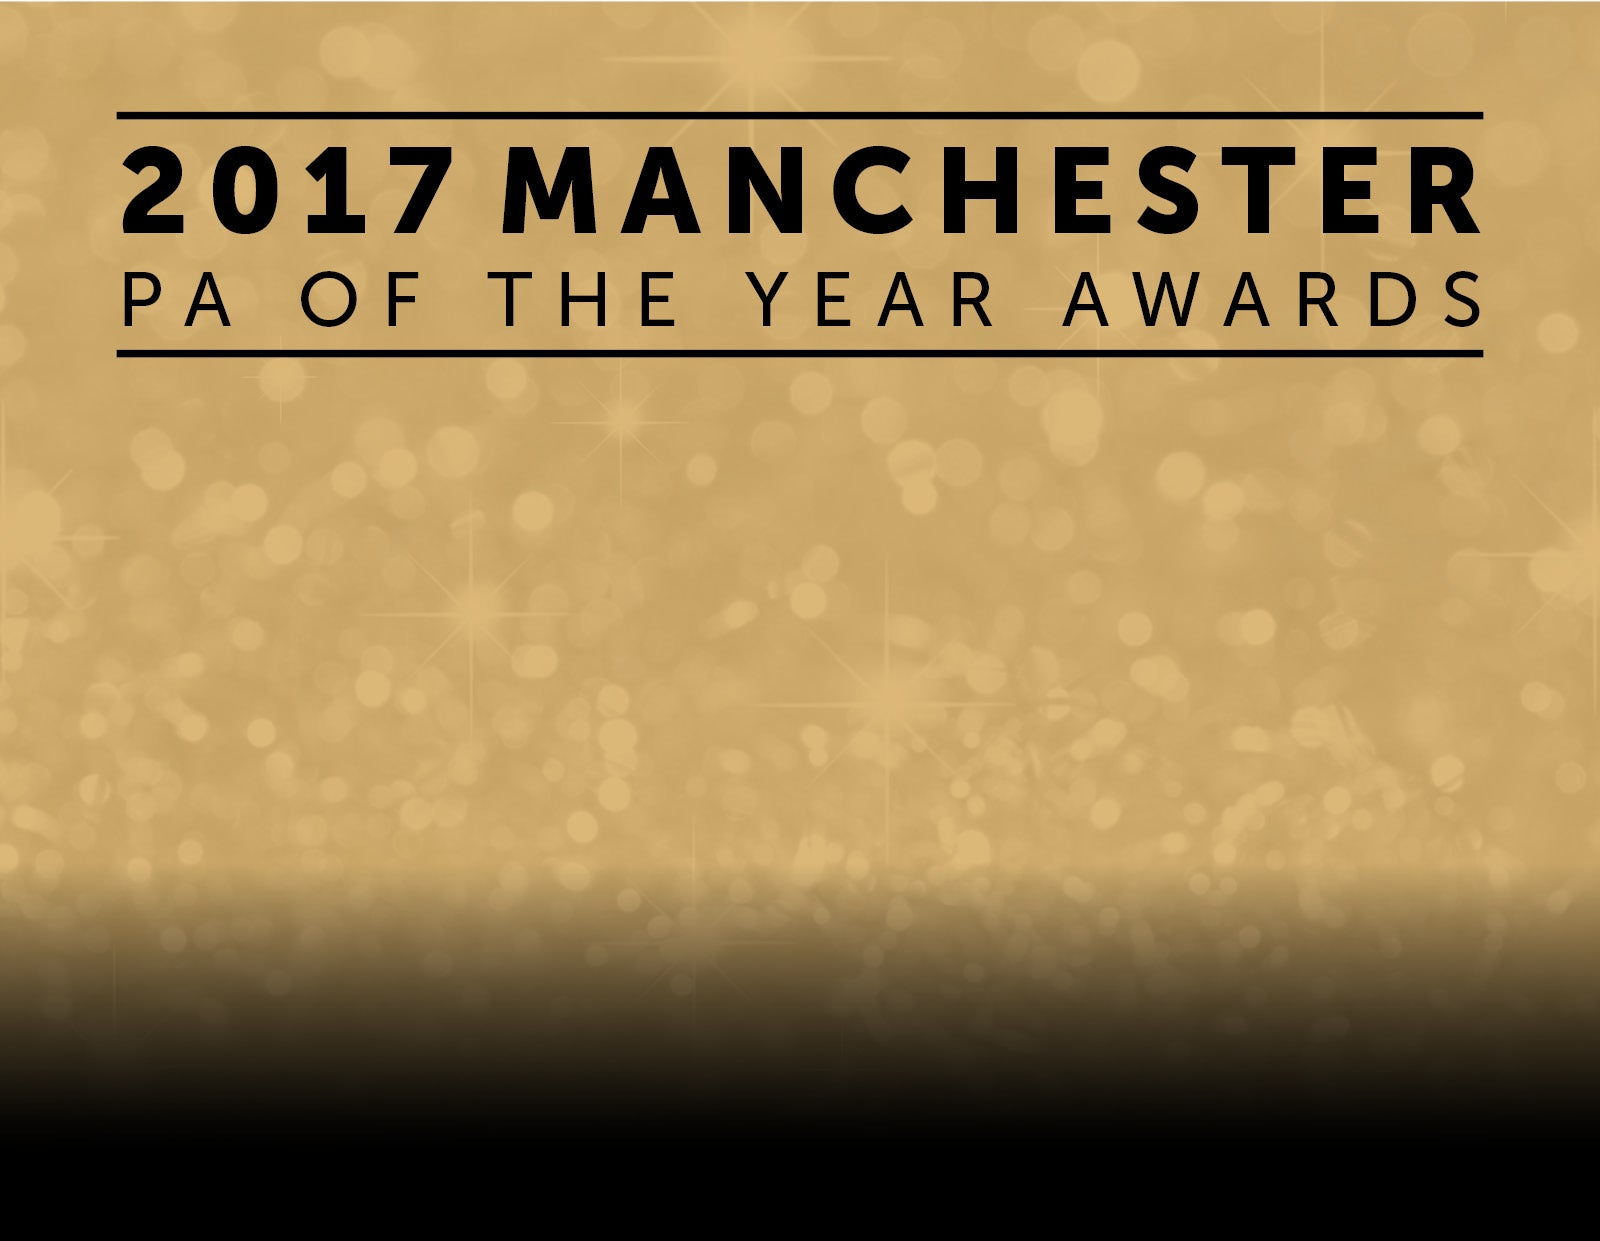 silver sparkly background with 2017 Manchester PA of the Year Awards written on in pink